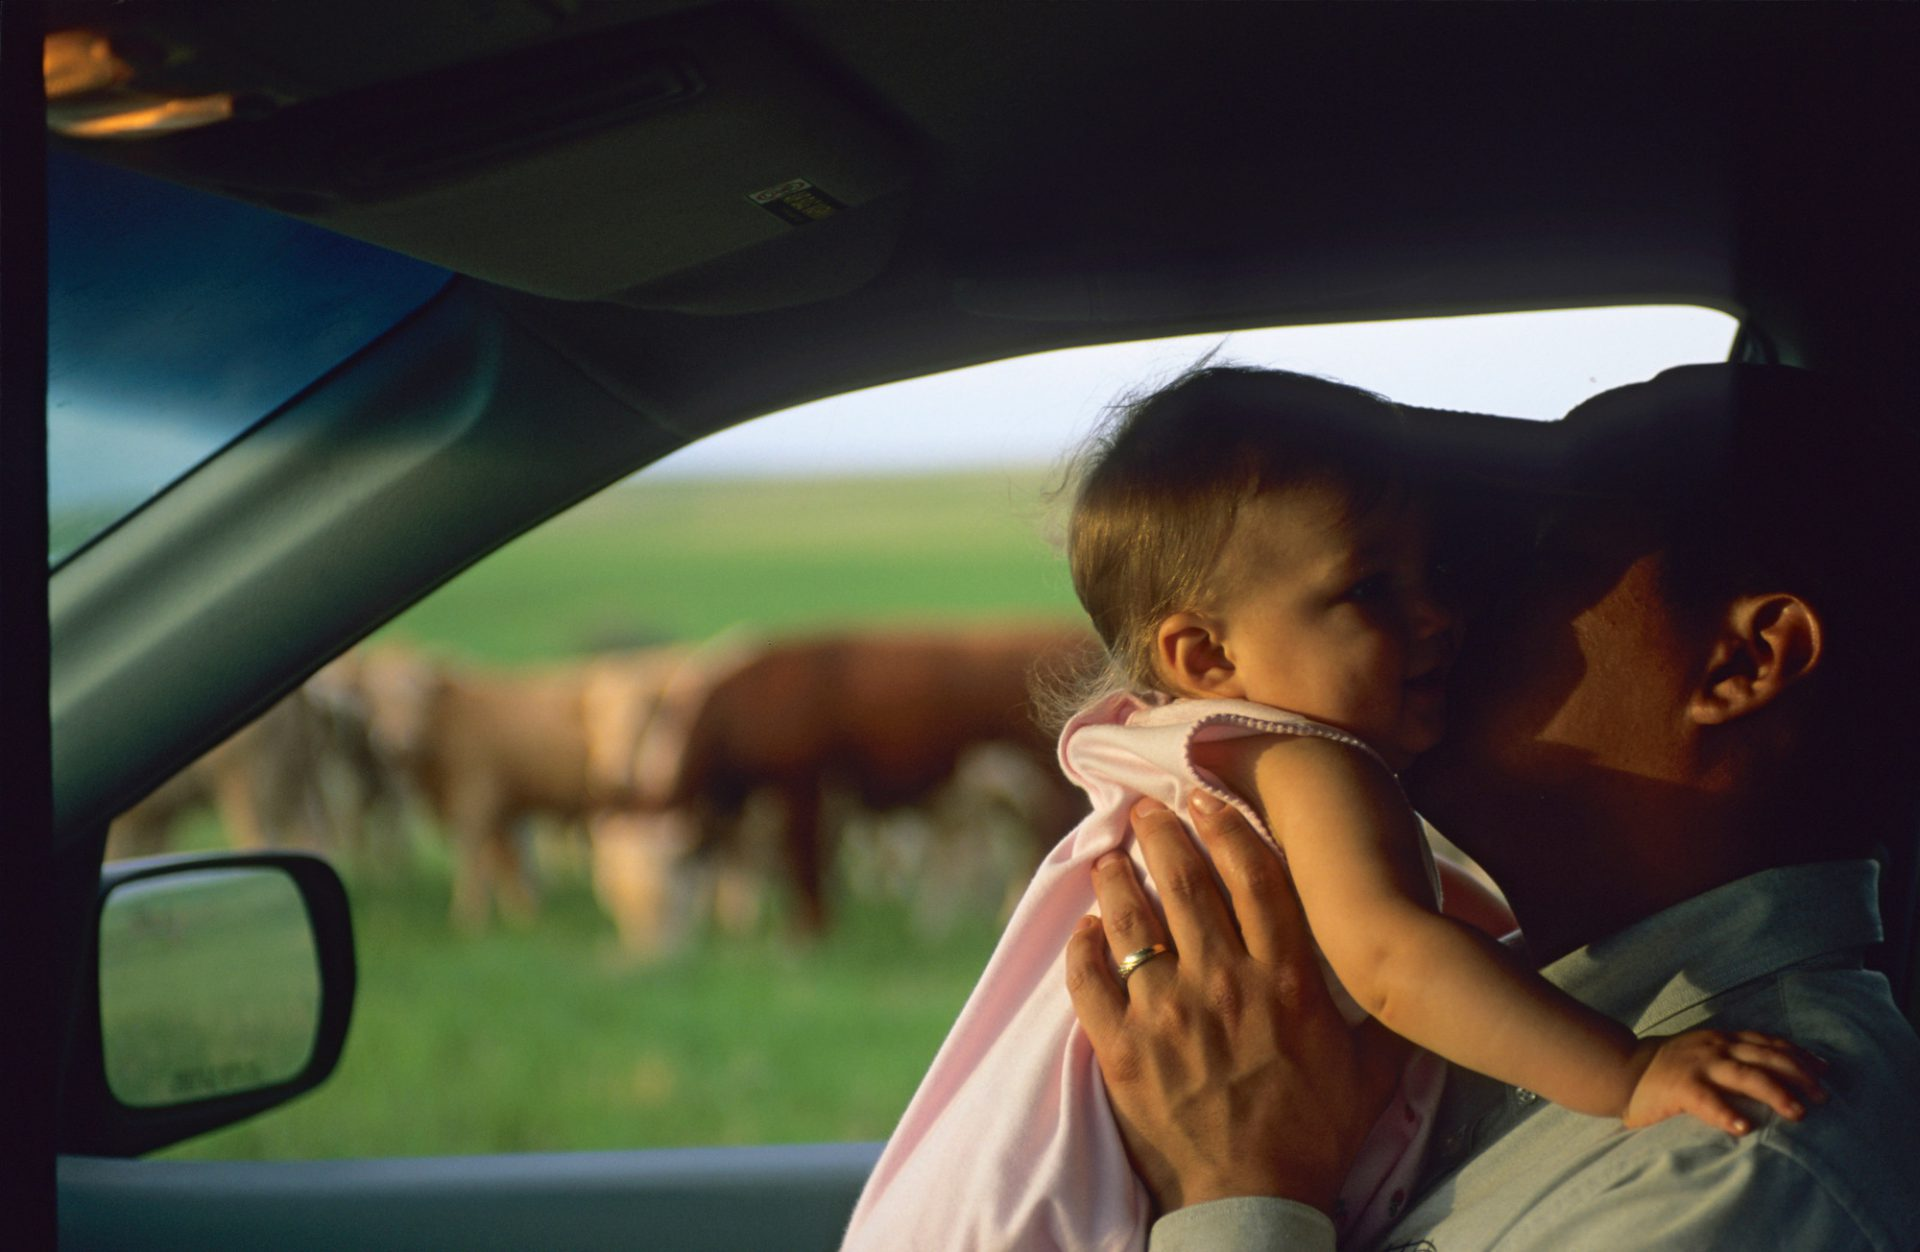 Photo: A rancher kisses his baby daughter inside a vehicle.